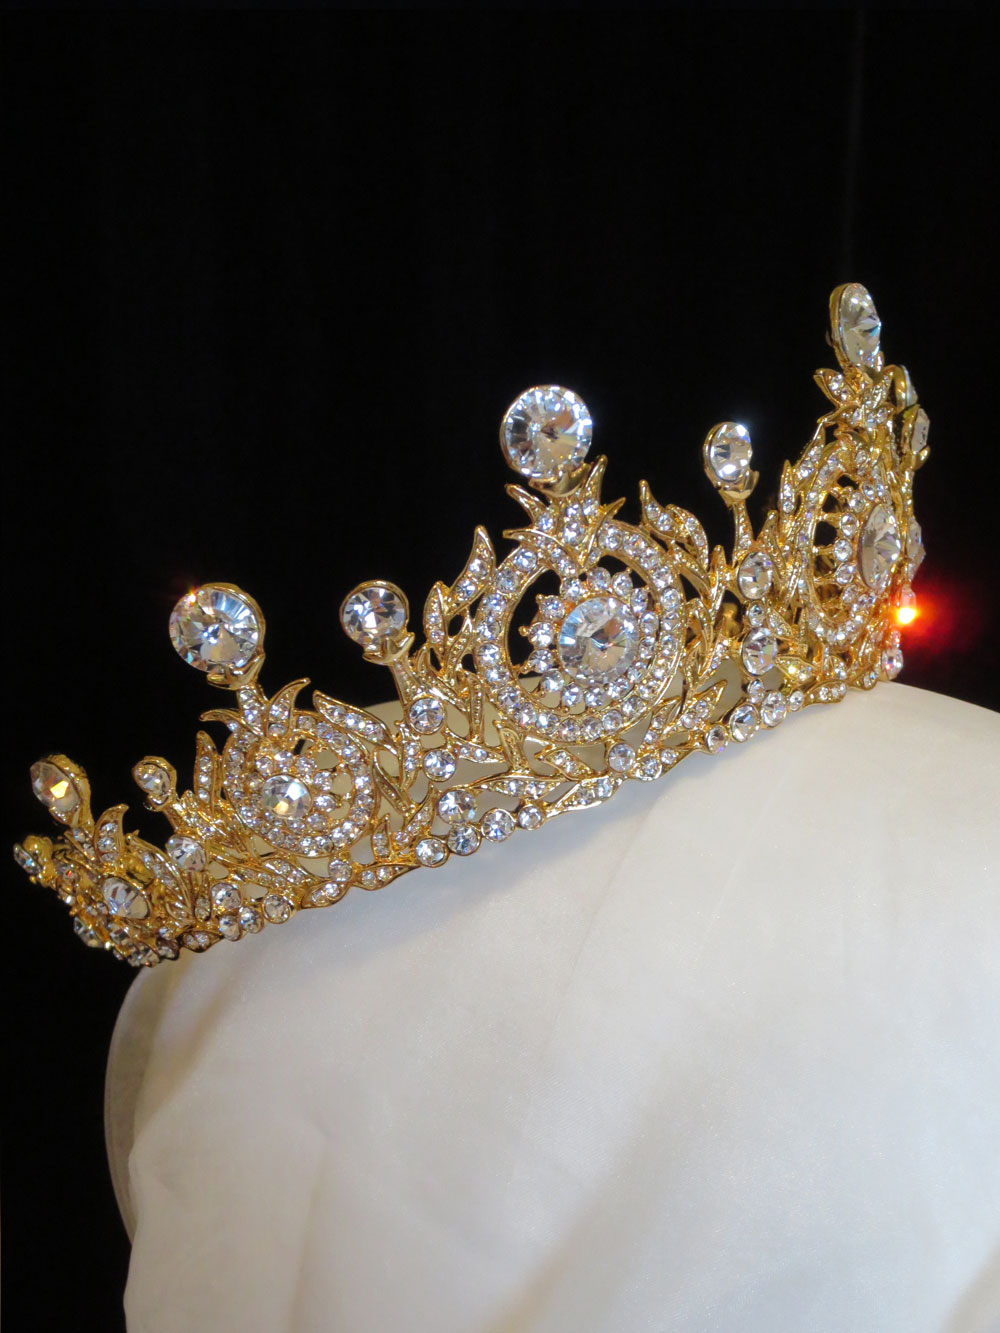 John-Zimmerman-Couture-Headpieces-and-Tiaras-Model-Queen-Gallery-Image-2